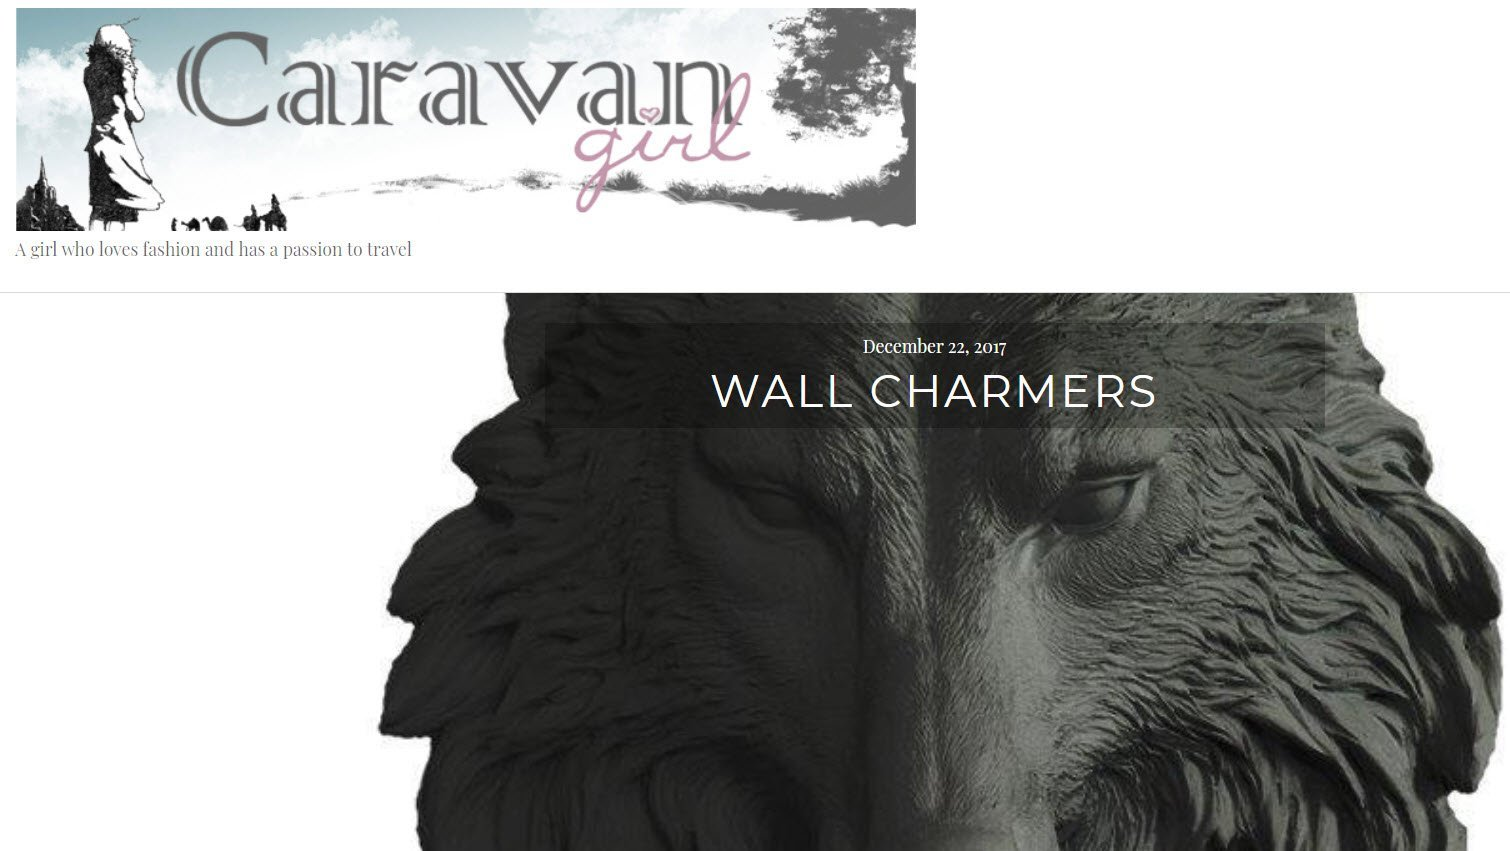 Wall Charmers Decor featured in Caravan Girl